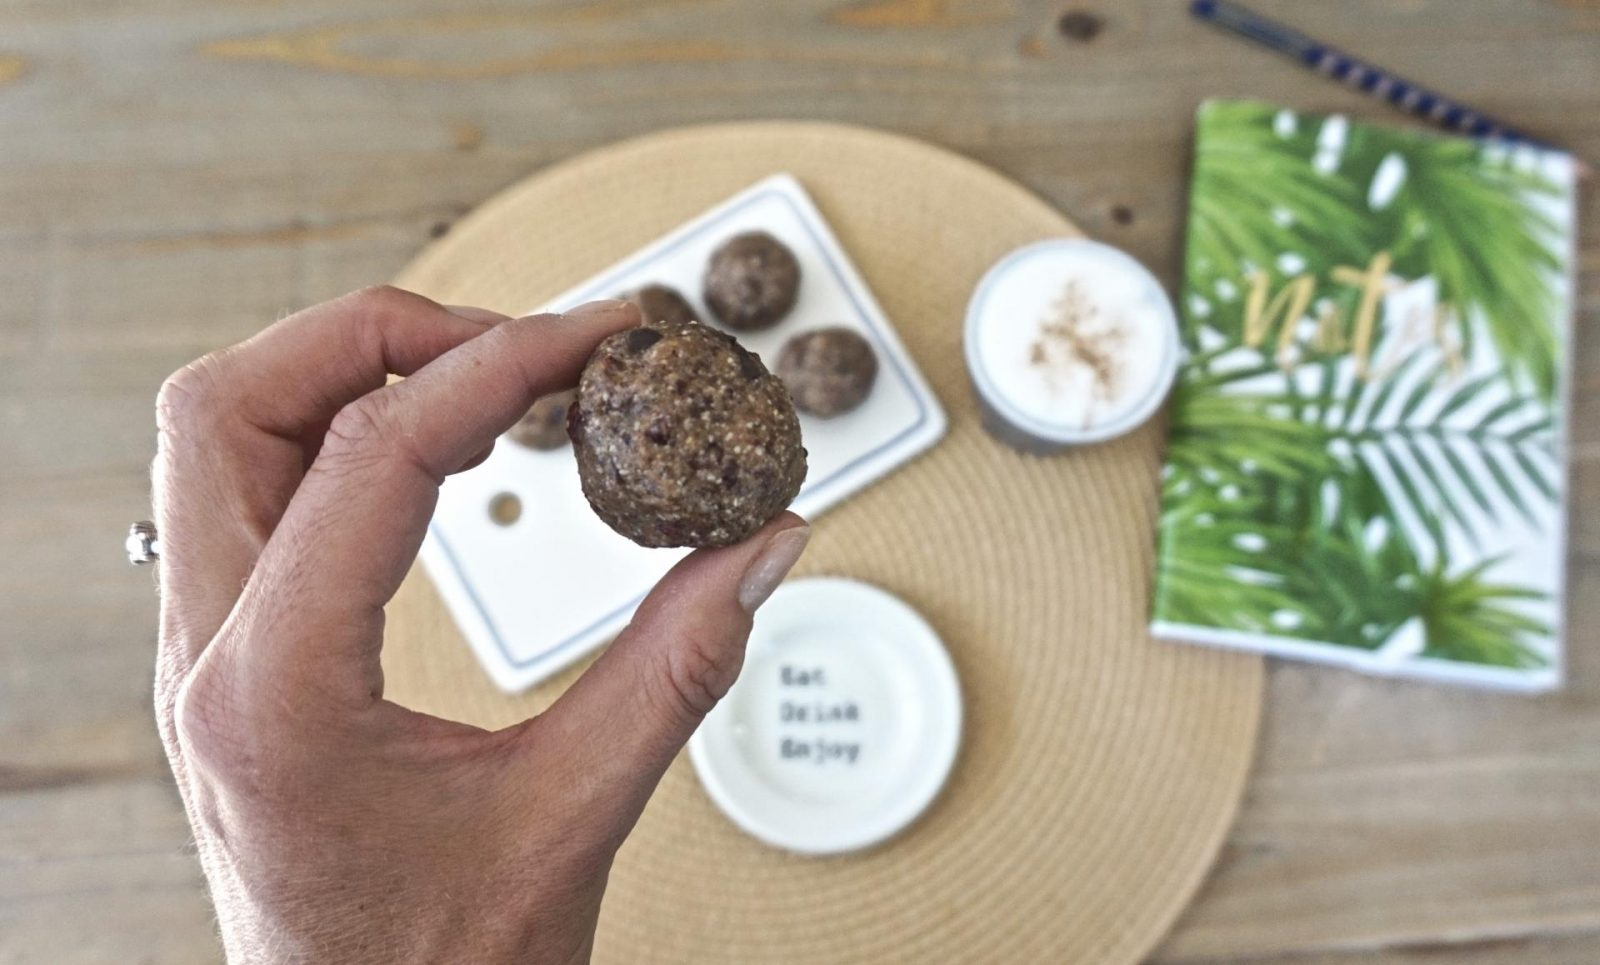 cranberry chocolate chip bliss balls healthy snack leanmeanmomma